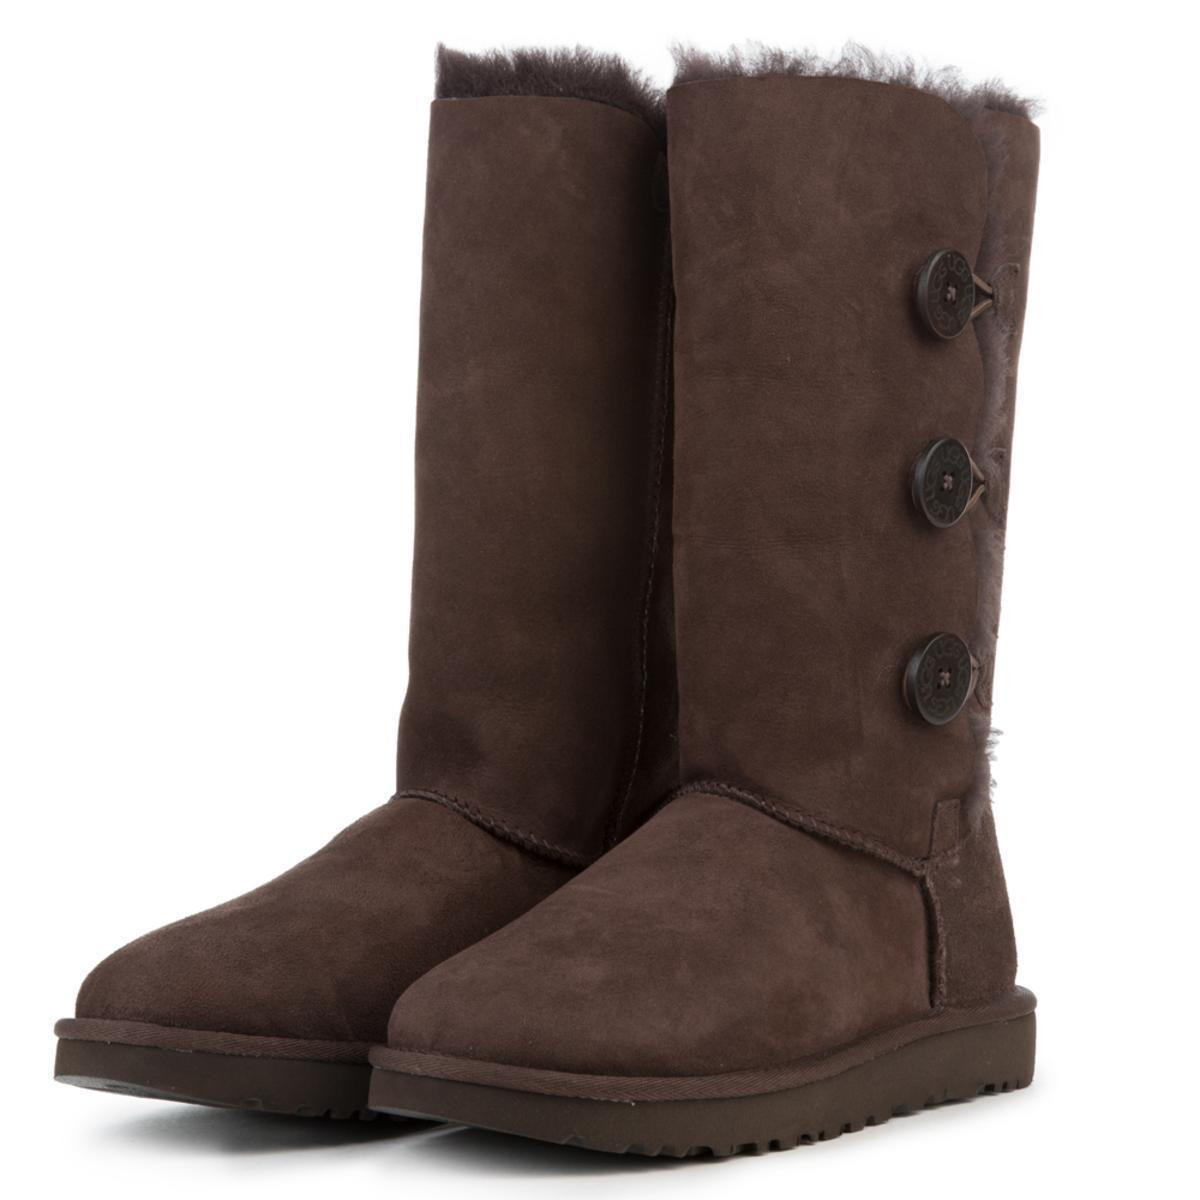 6ae19361286 Women's Brown Bailey Button Triplet Ii Chocolate Boots